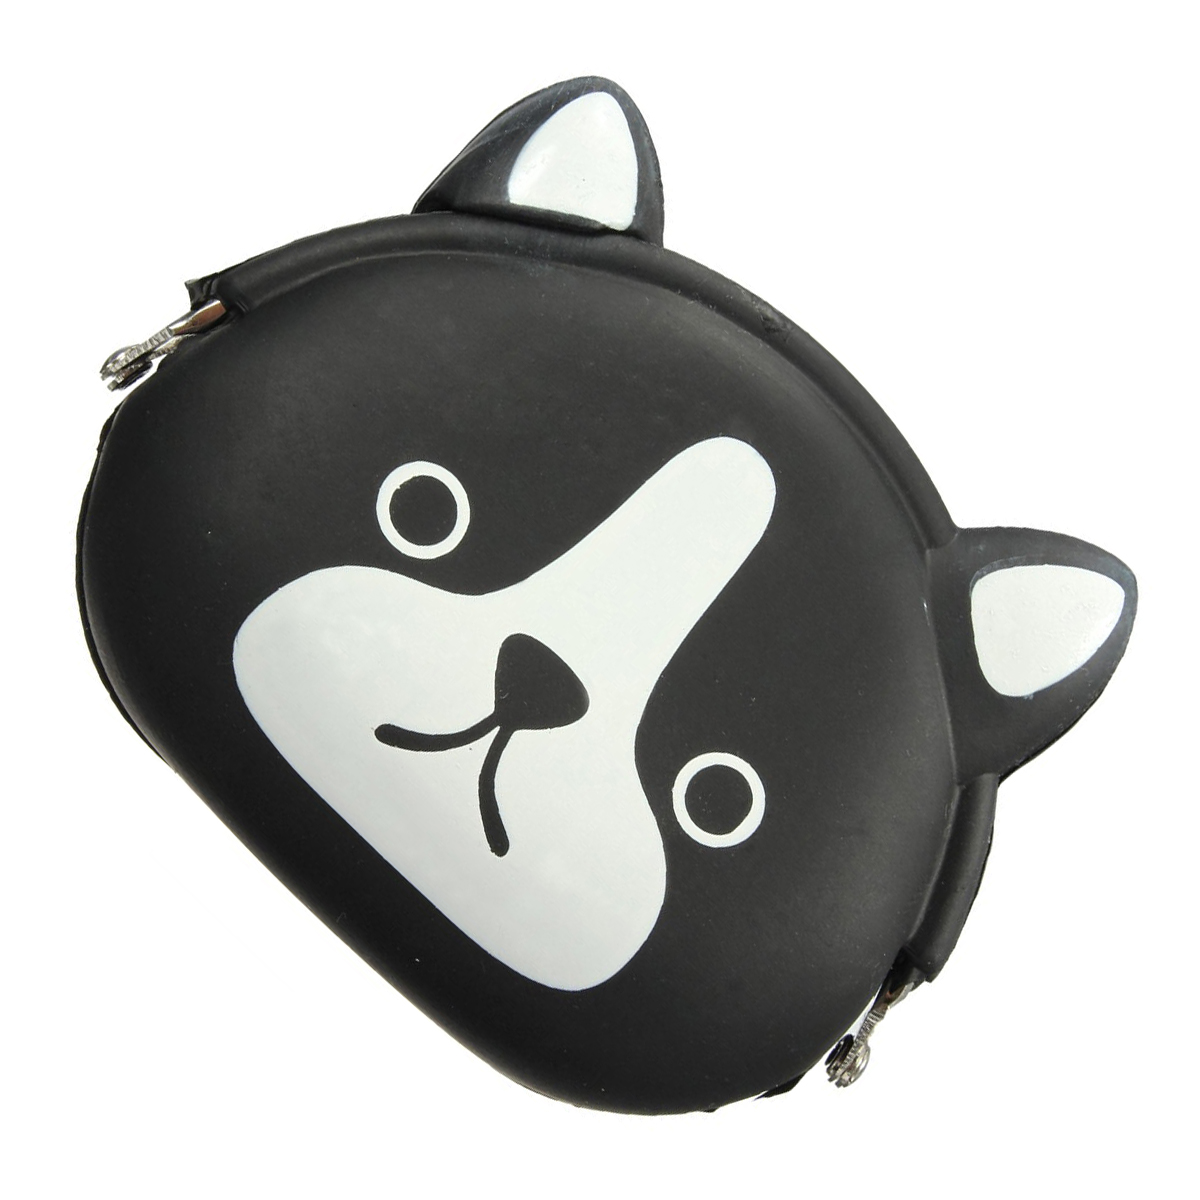 Women Girls Wallet Kawaii Cute Cartoon Animal Silicone Jelly Coin Bag Purse Kids Gift Black dog